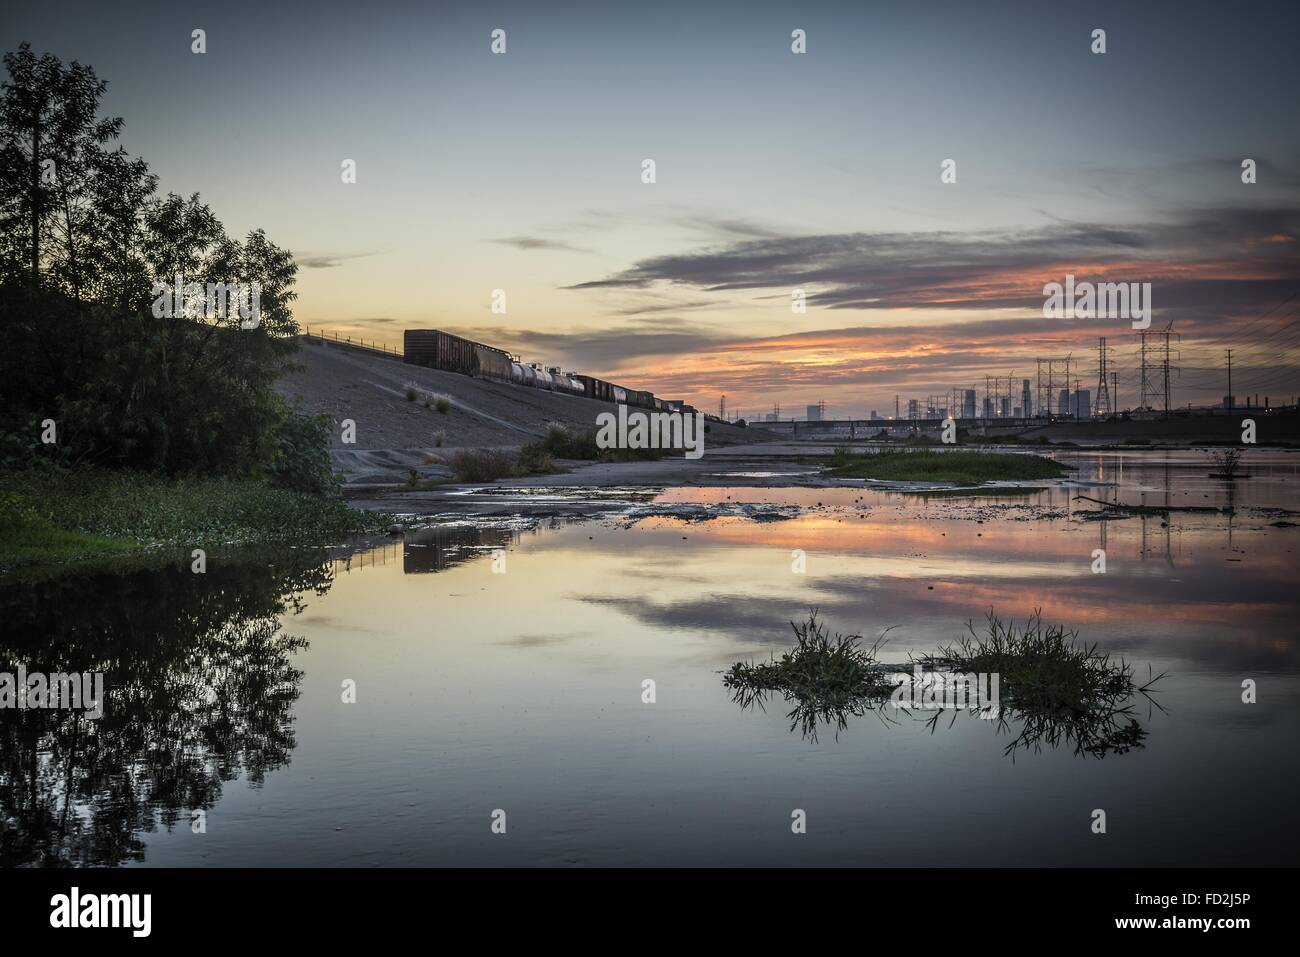 Los Angeles, California, USA. 30th Aug, 2014. Los Angeles skyline view from Maywood, in LA River © Fred Hoerr/ZUMA Stock Photo